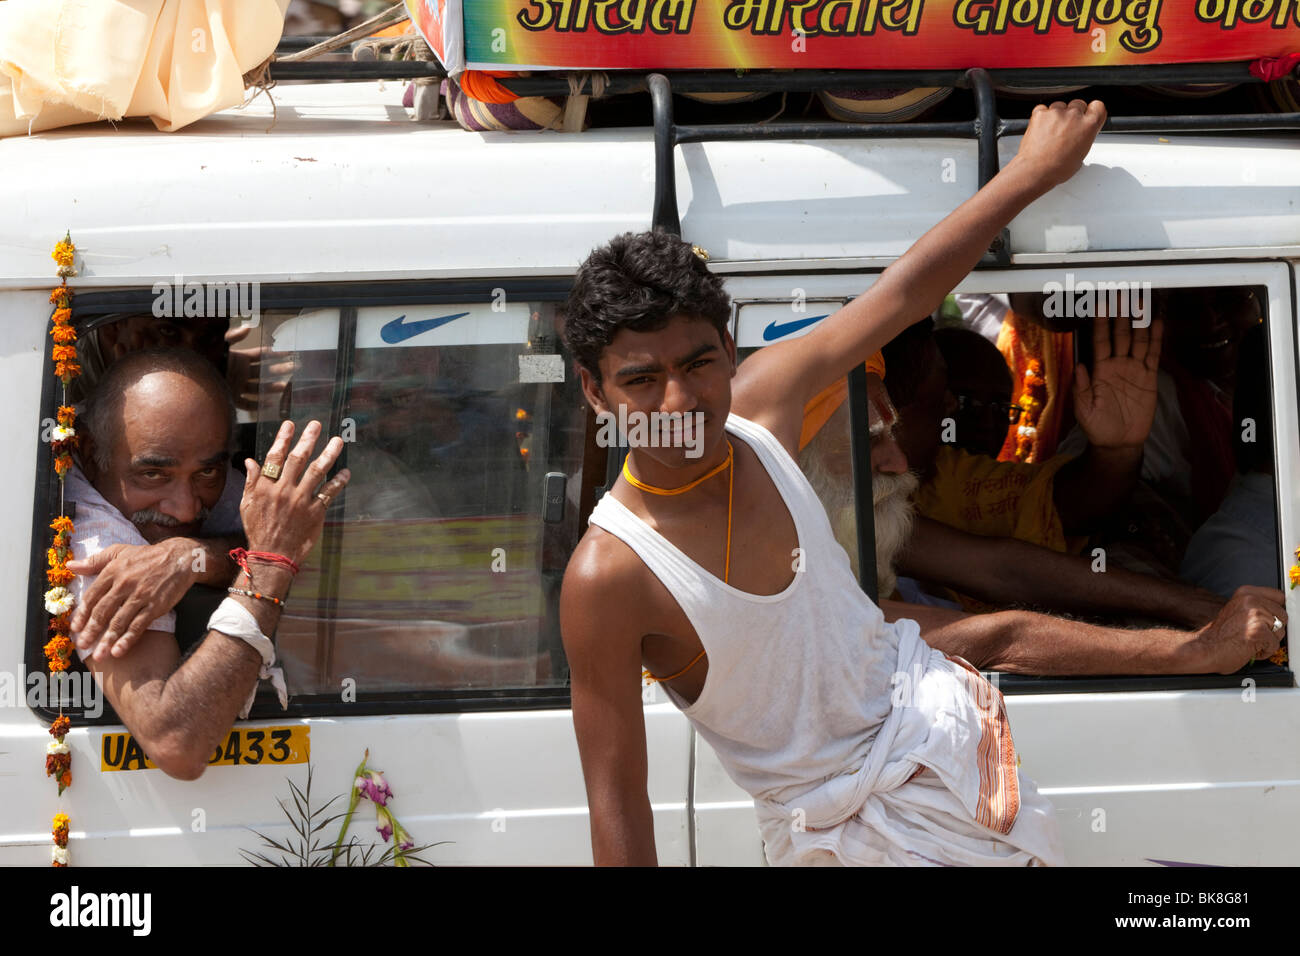 Flowers & traditions accompany Nike symbols and a relatively late model 4WD fillled with sadhus and VIP's - Stock Image